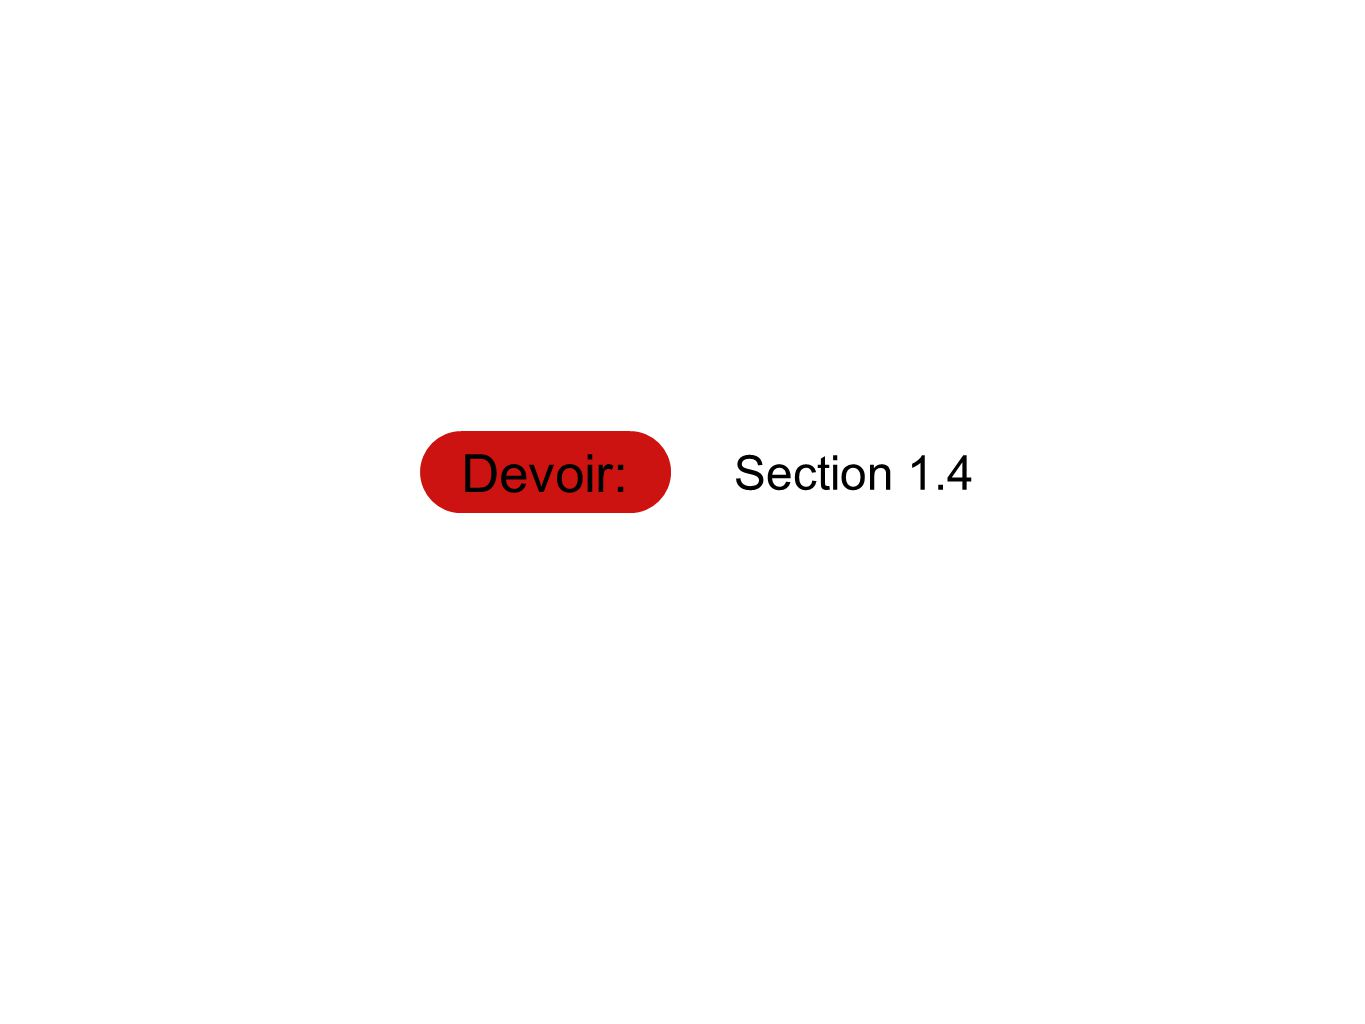 Devoir: Section 1.4